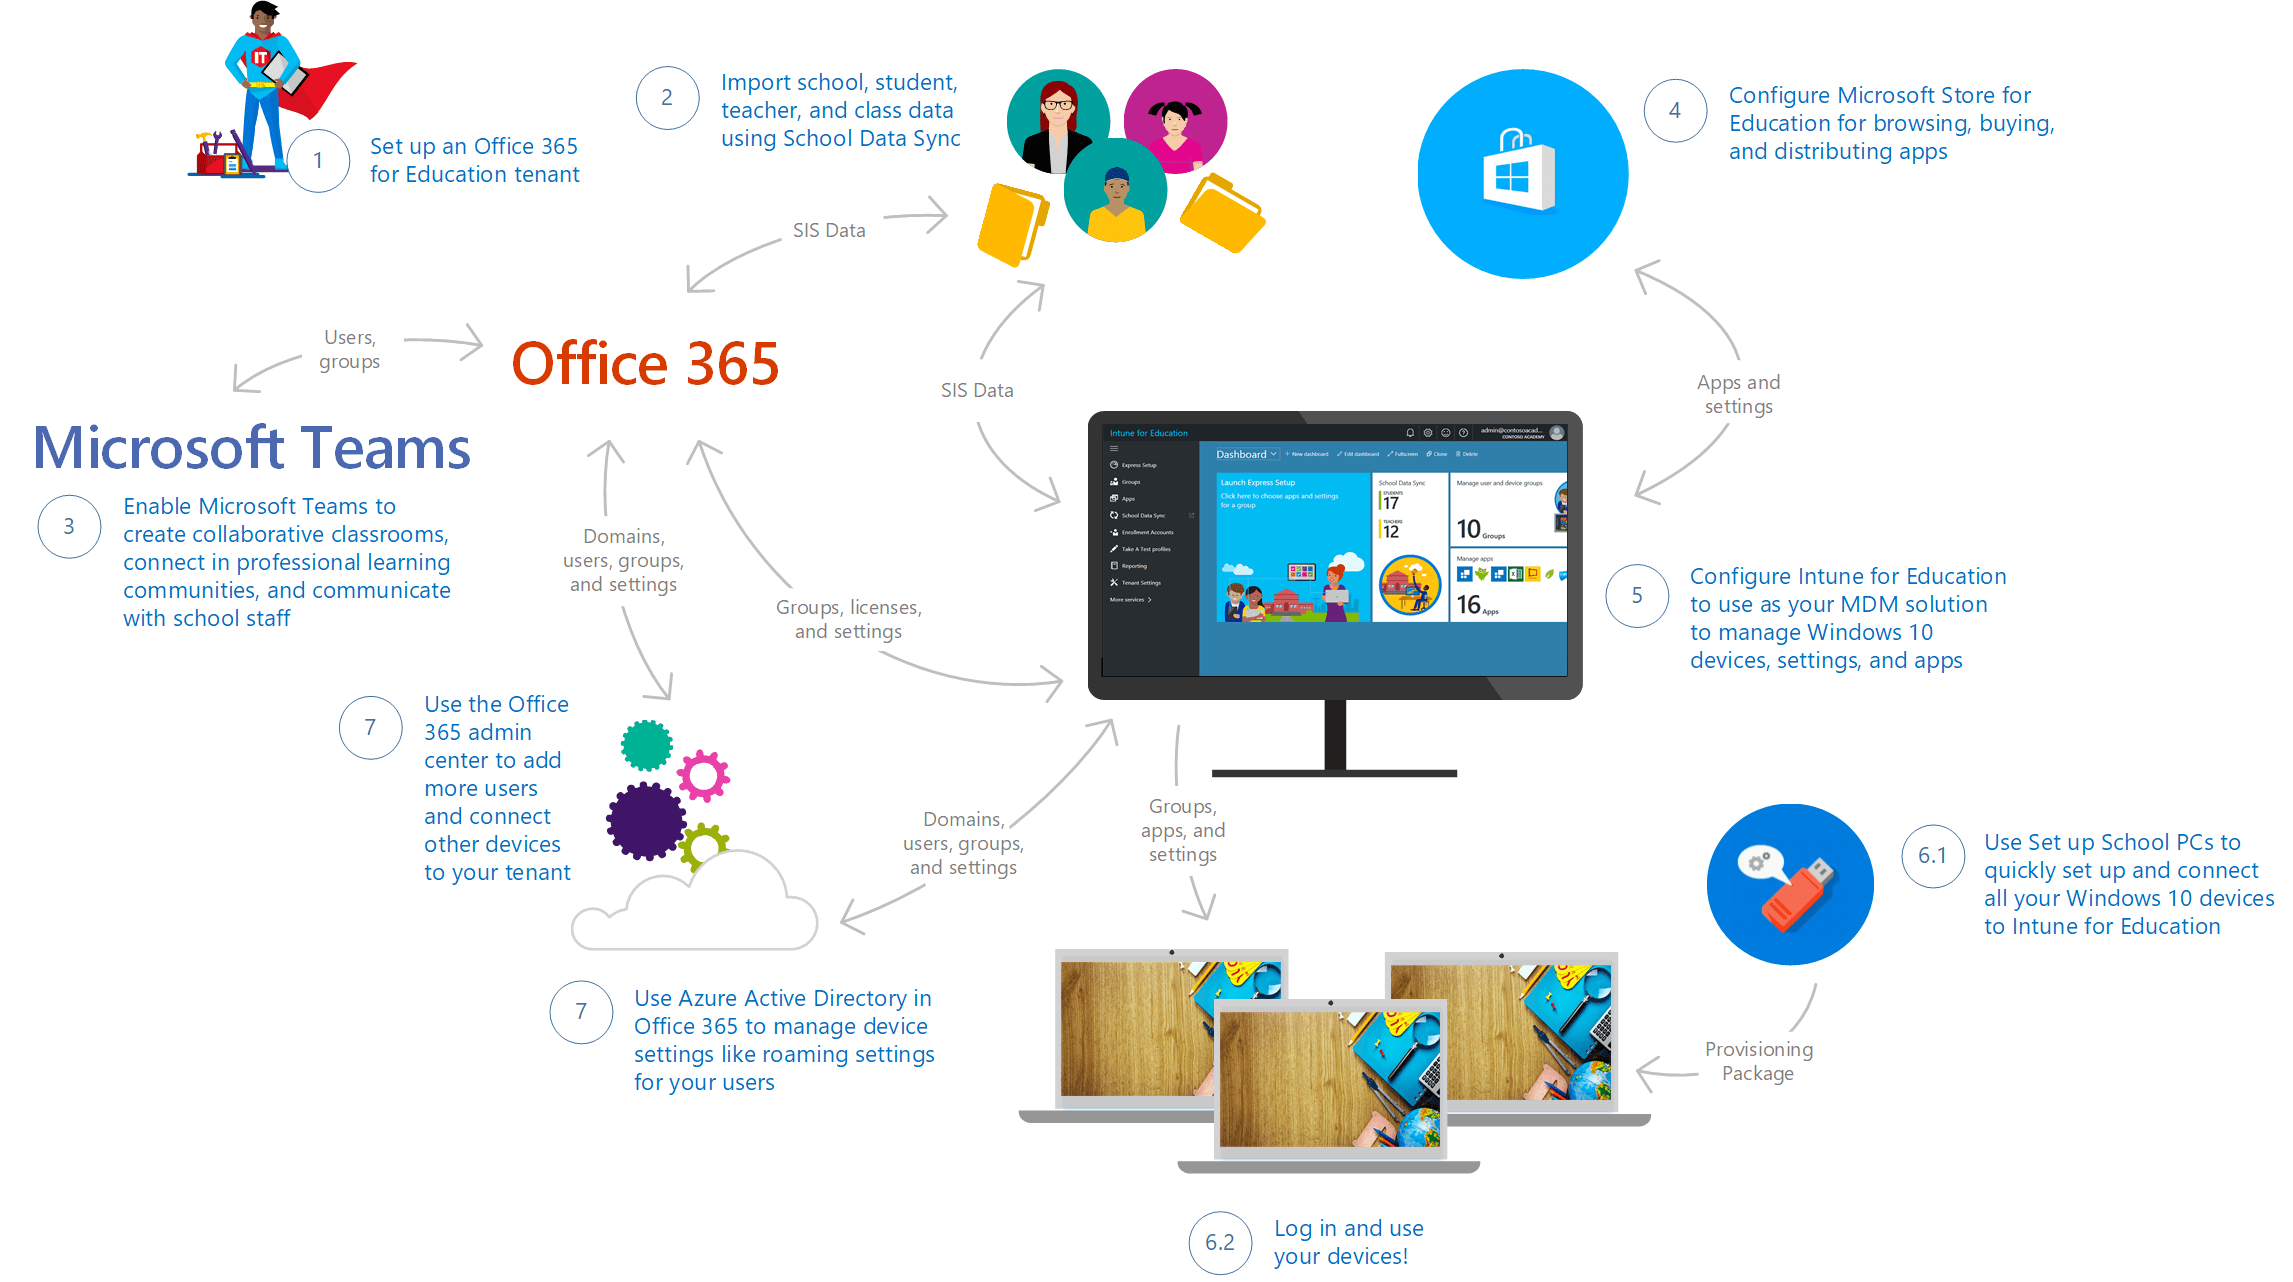 sccm deployment diagram aprilaire 600 humidistat wiring deploy and manage a full cloud it solution with microsoft education | docs